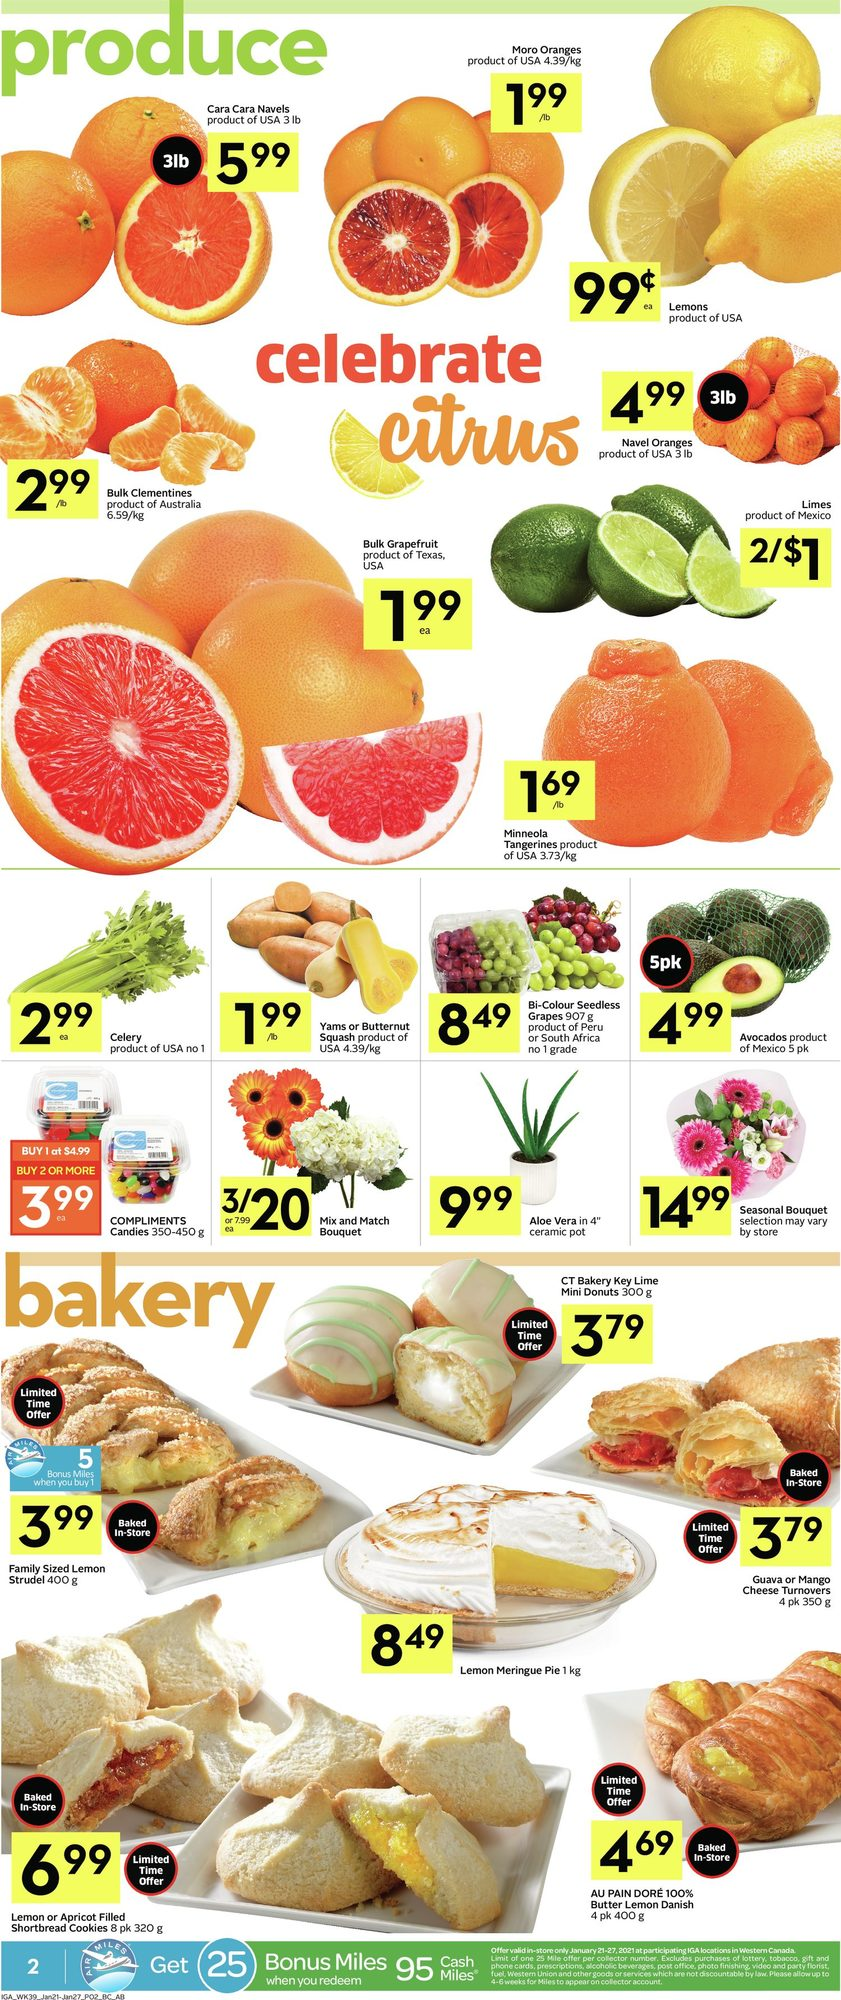 IGA - Weekly Flyer Specials - Page 2